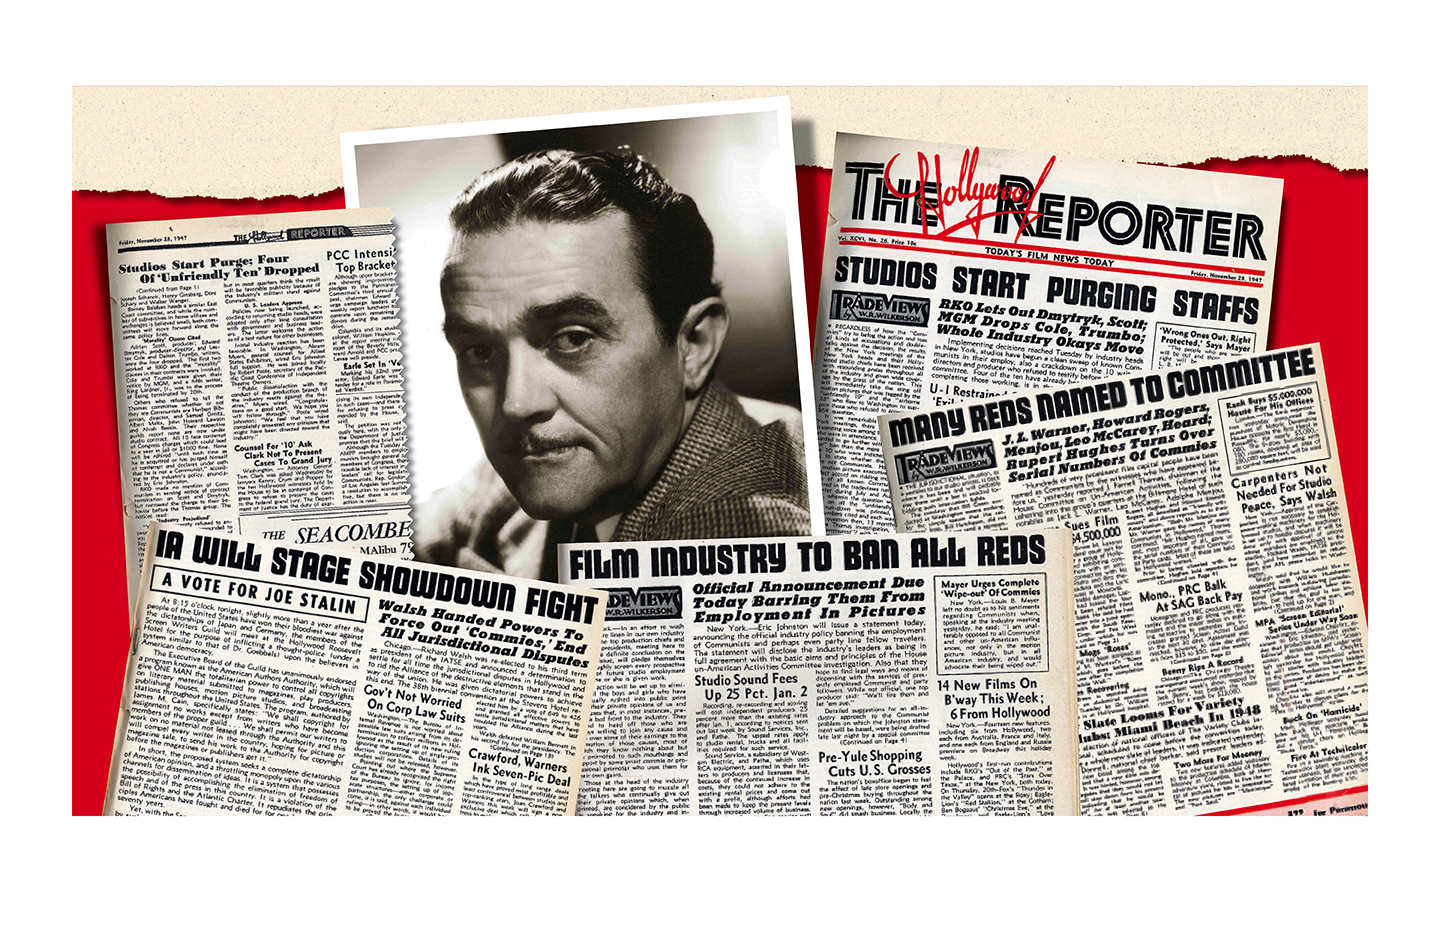 The Hollywood Reporter, After 65 Years, Addresses Role in Blacklist